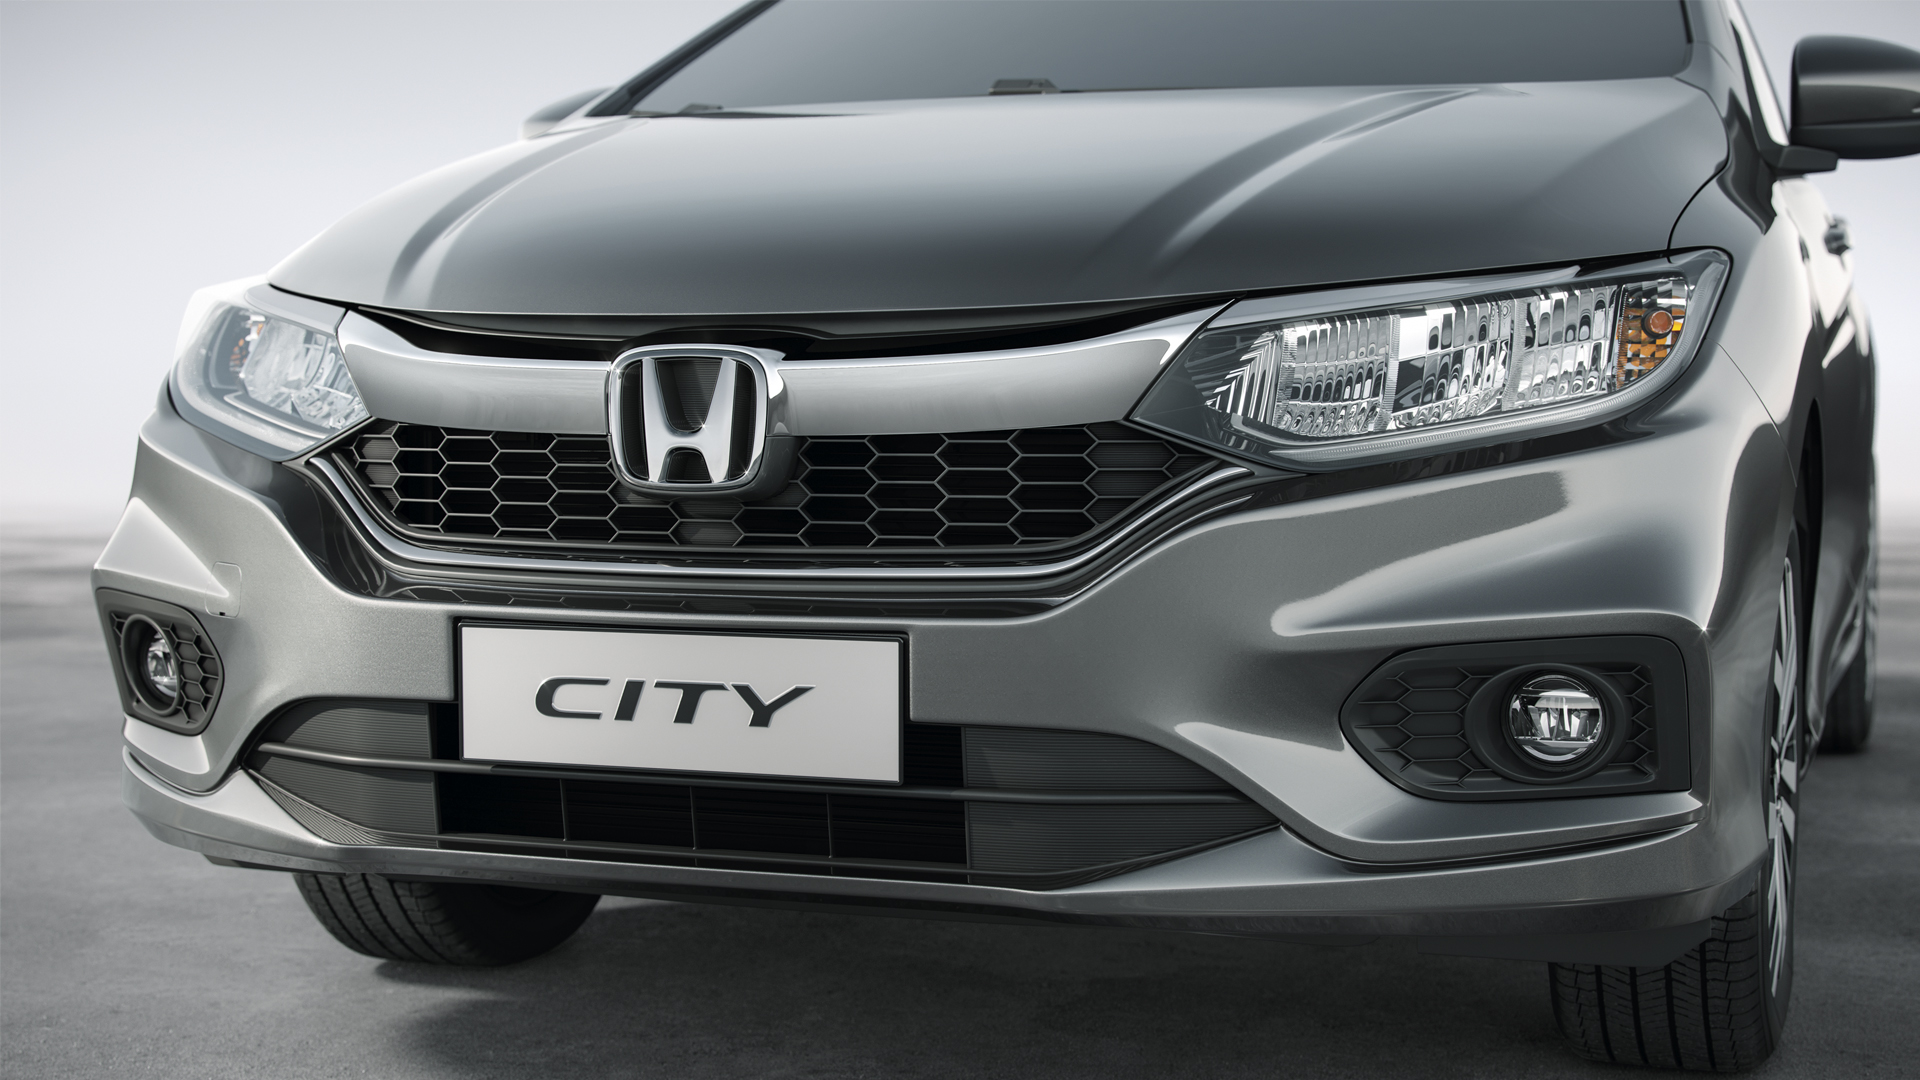 Honda City - Grade frontal cromada com visual imponente